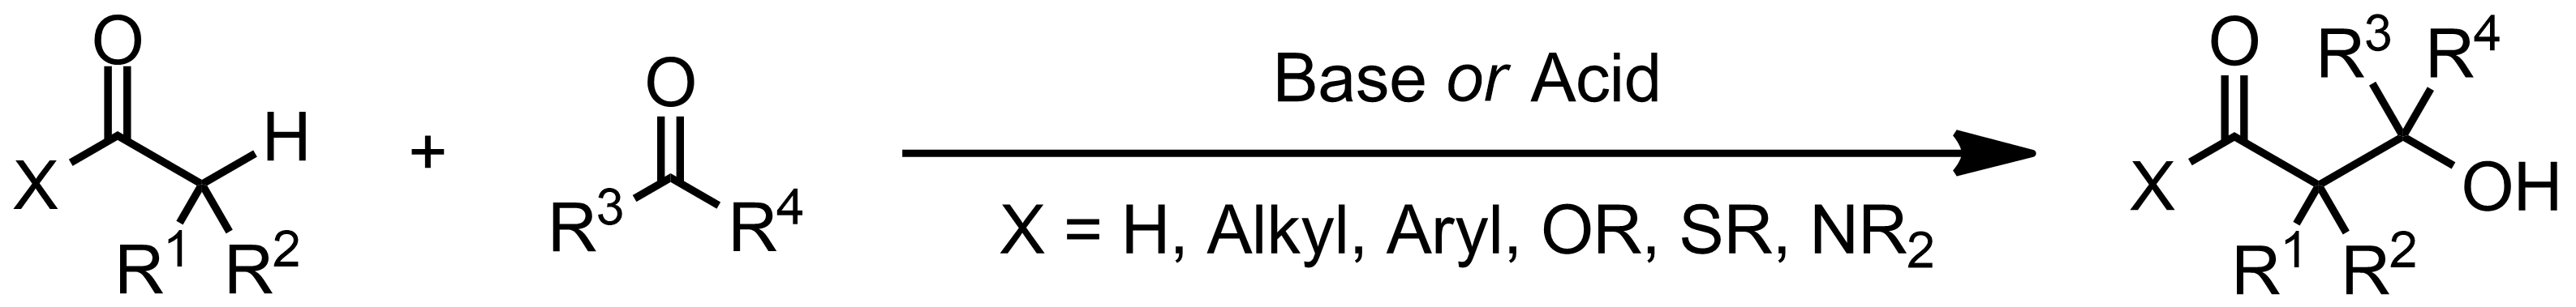 Schematic representation of the Aldol Addition.